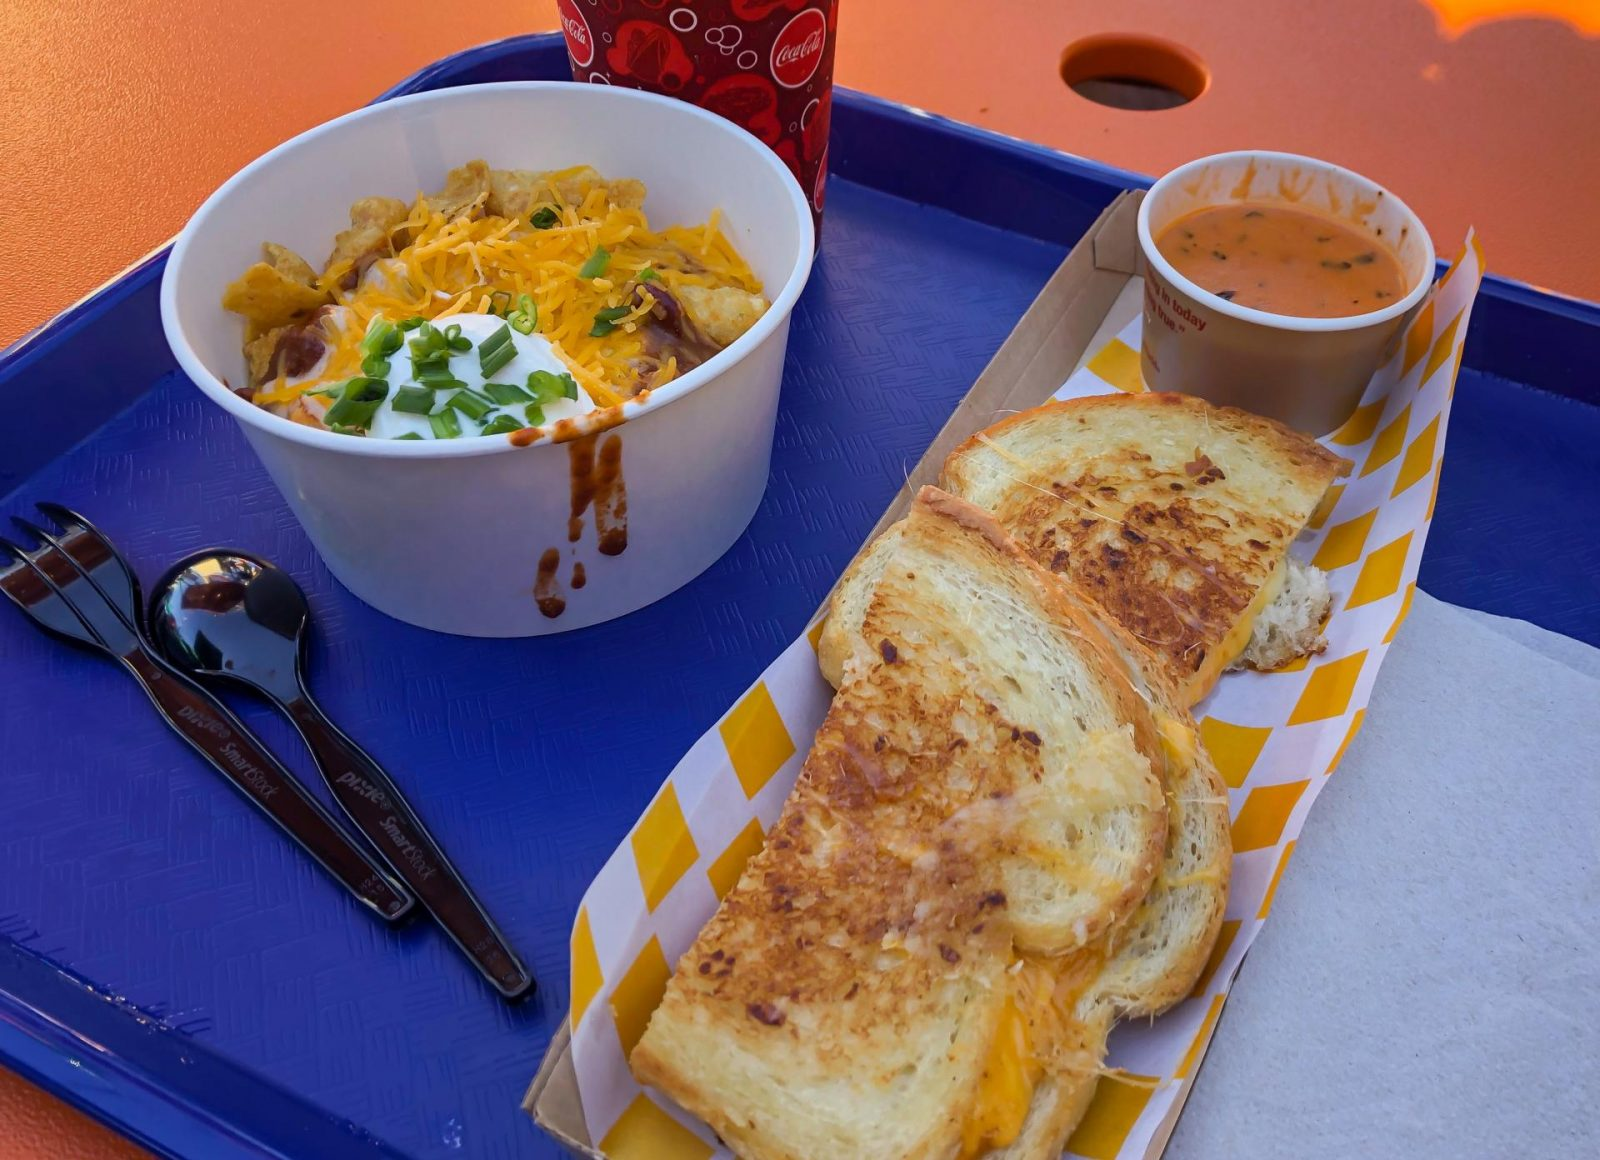 Totchos and Grilled Cheese Sandwich at Woody's lunch box, Hollywood Studios